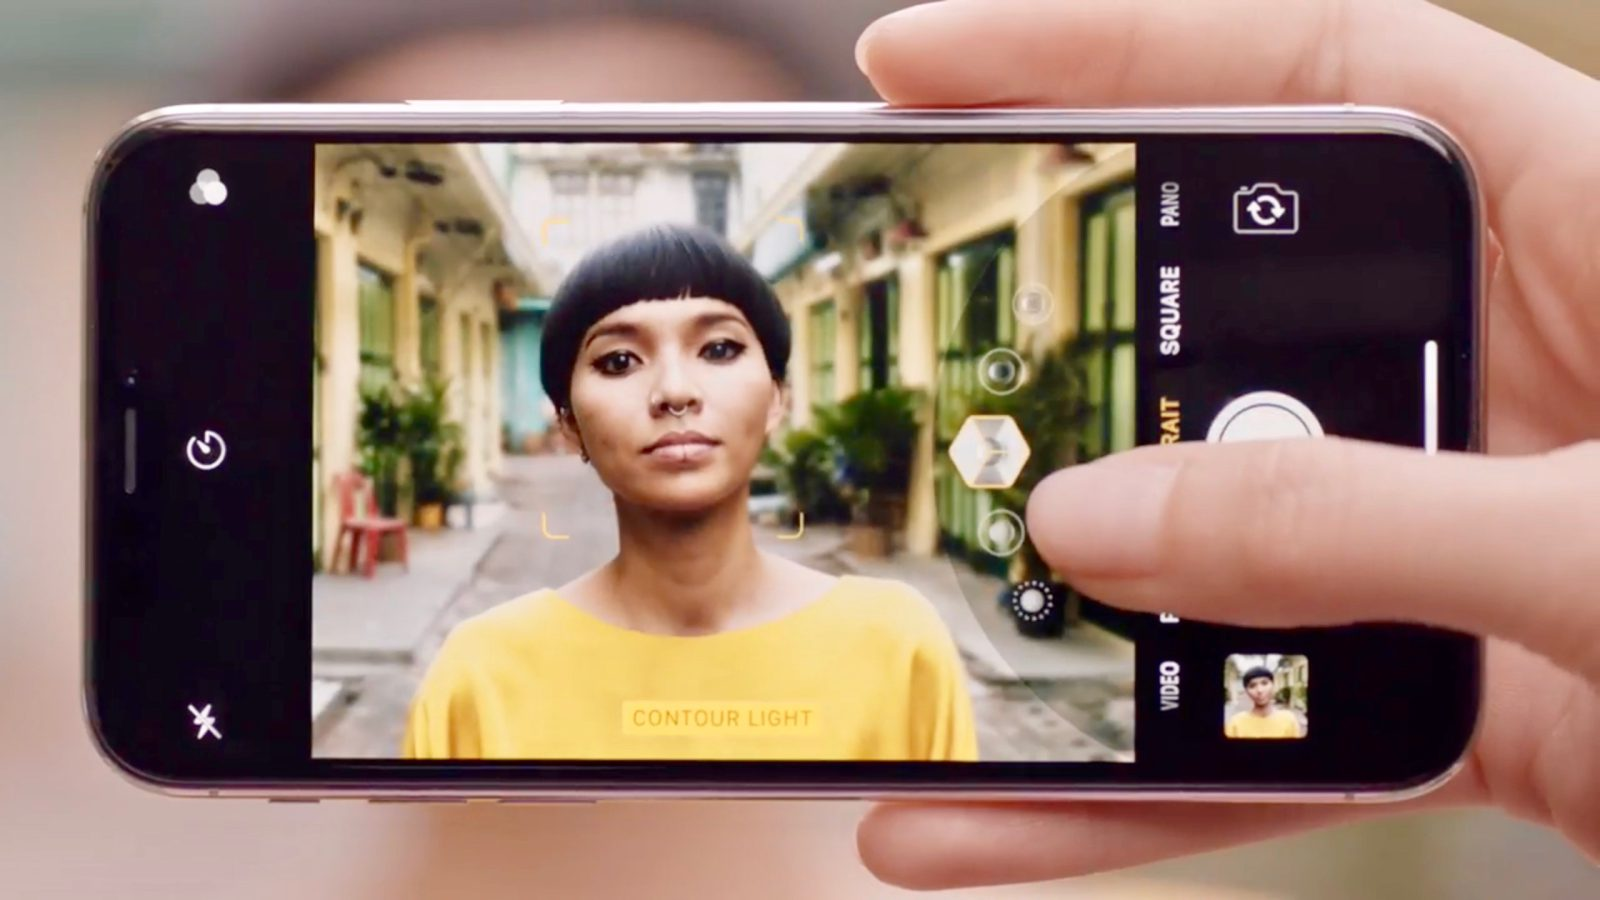 Apple hypes iPhone X Portrait Lighting photography in 'A New Light' ad apple-hypes-iphone-x-portrait-lighting-photography-in-a-new-light-ad